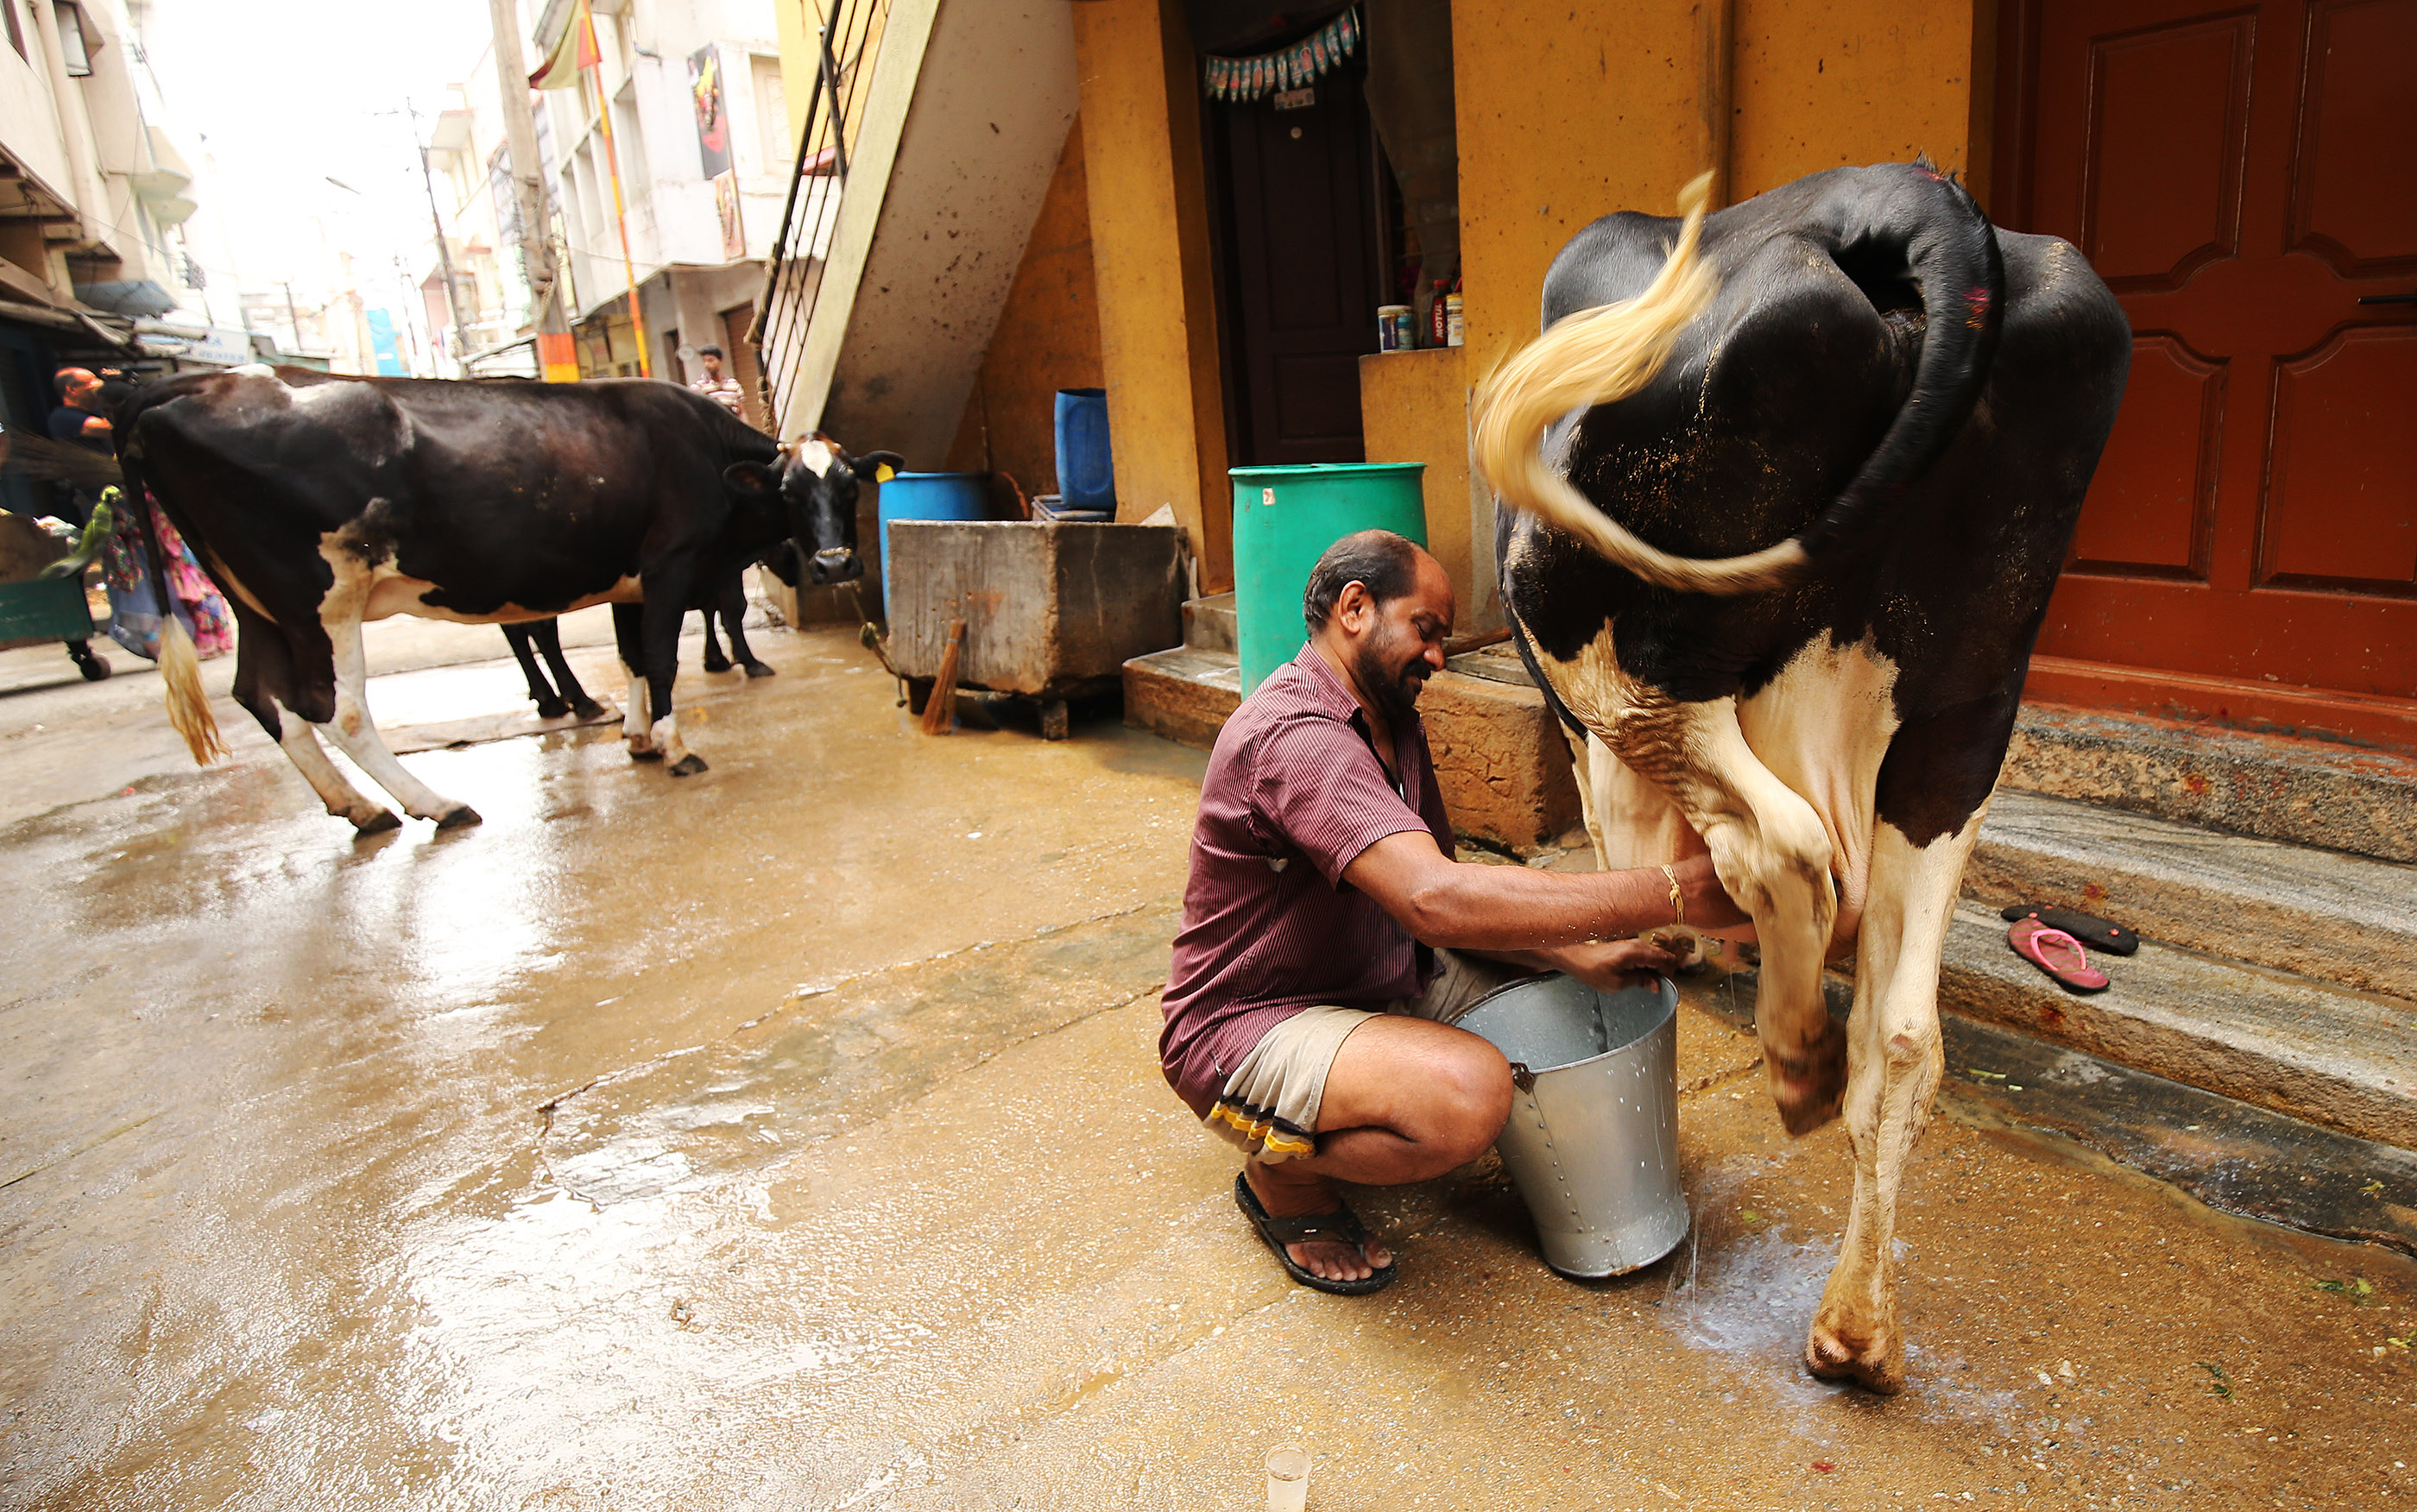 A cow is milked in the streets in Bengaluru, India, on Thursday, April 19, 2018.